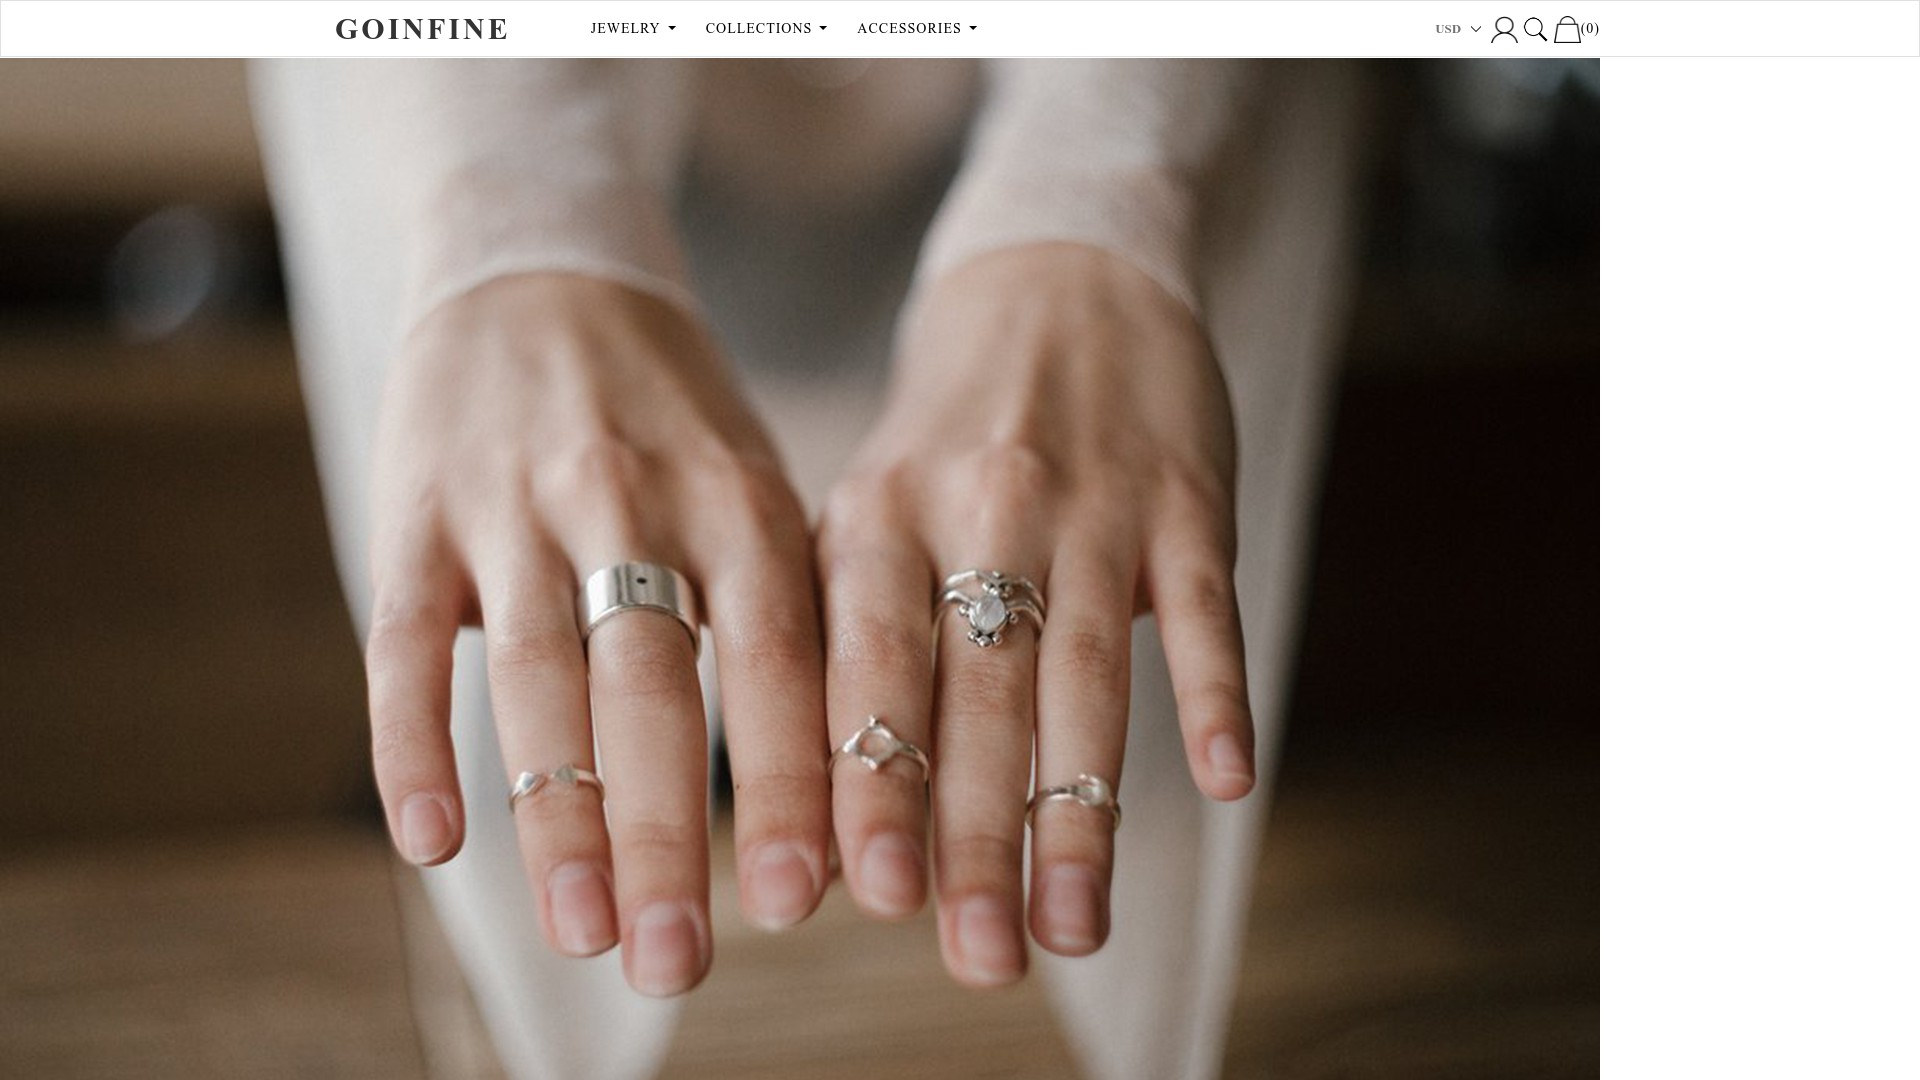 Is Goinfine.com a Scam? Review of the Online Jewelry Store